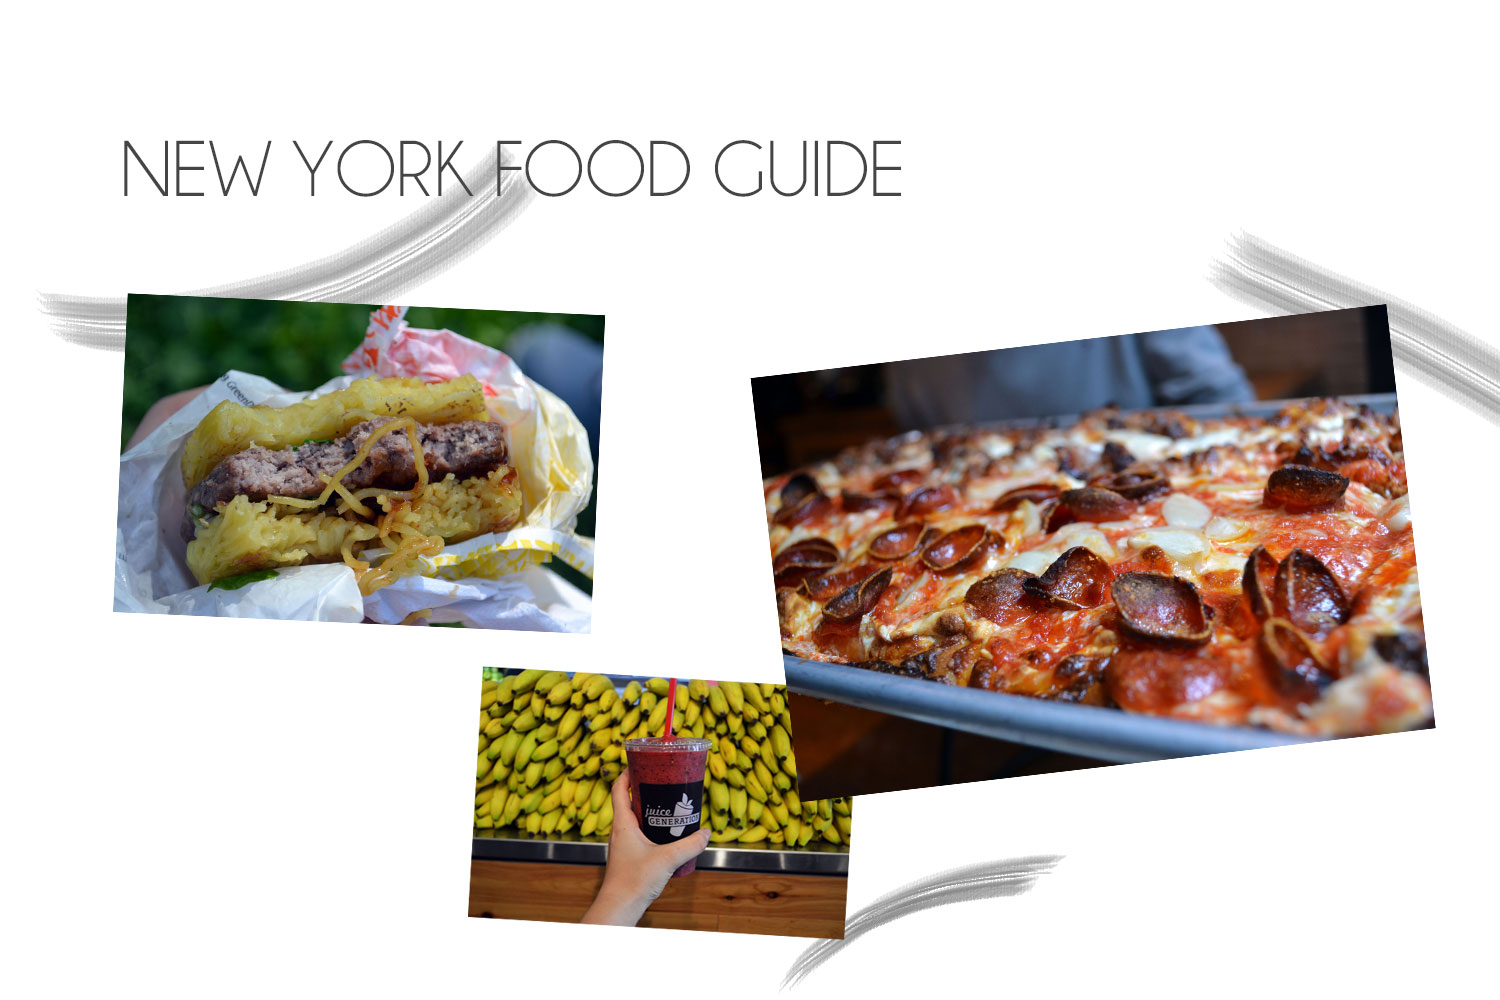 New York Food Guide: Mijn Favoriete Restaurants in NYC - New York Food Guide